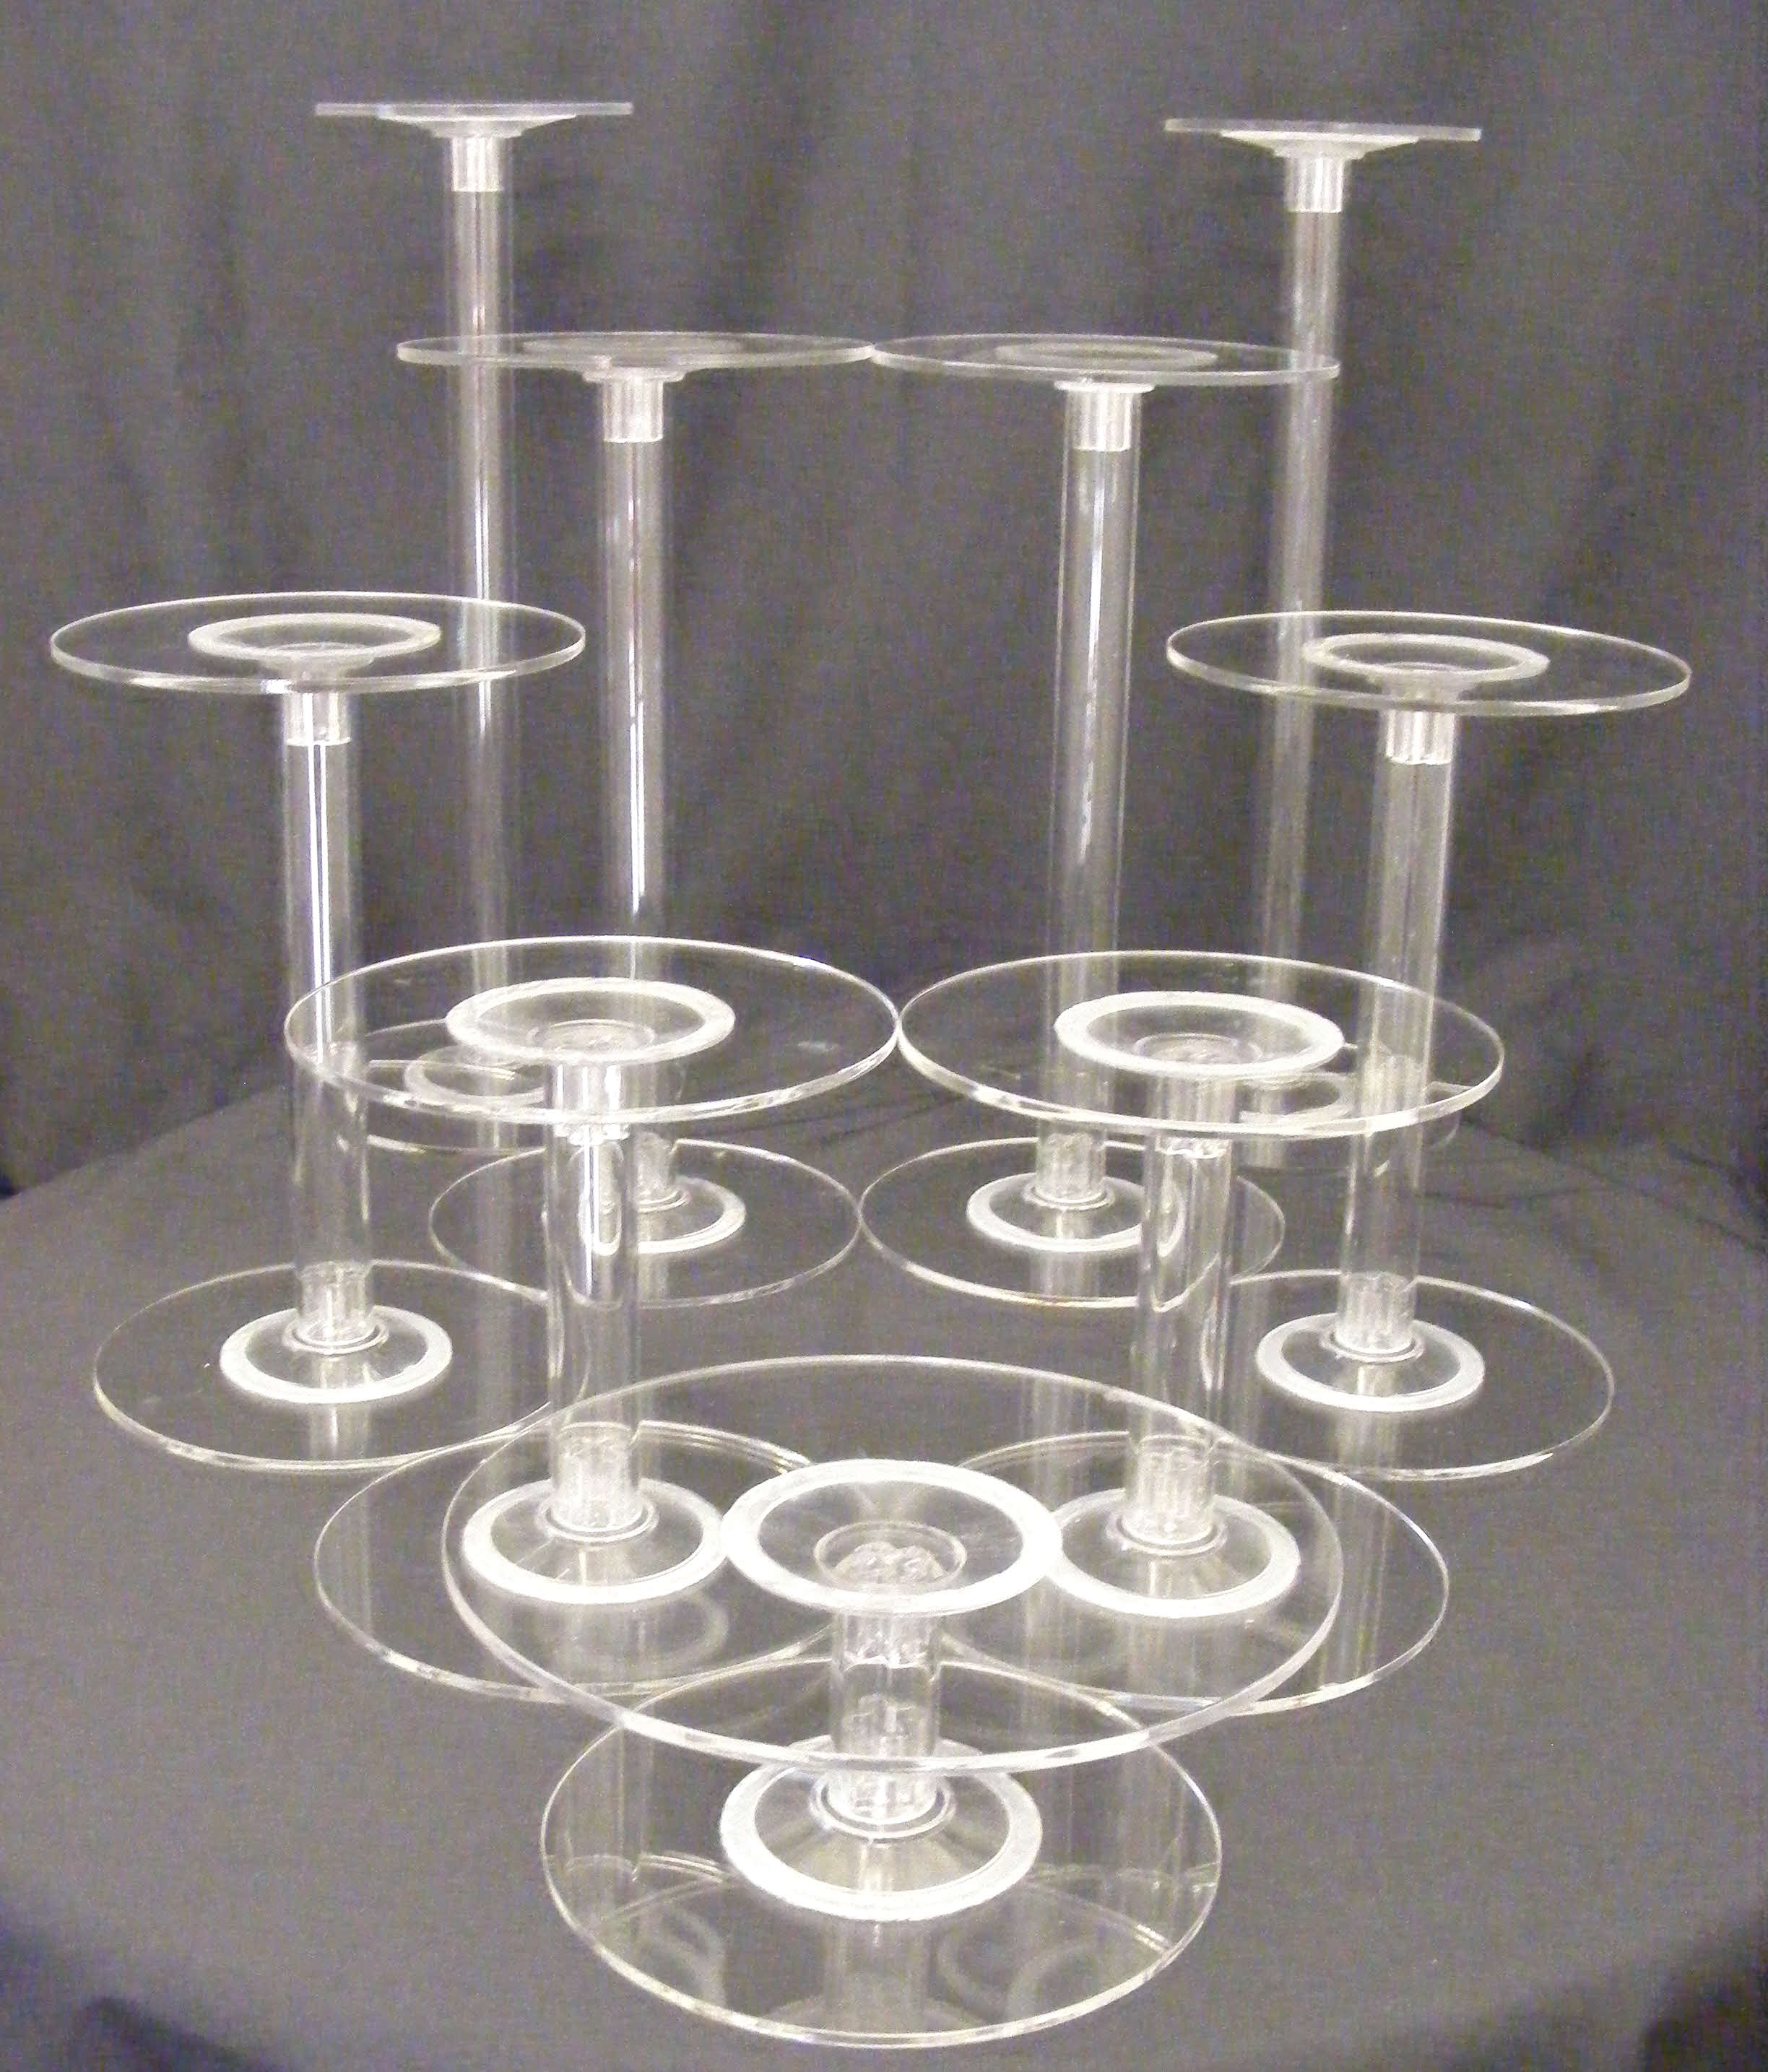 The 3-Tier Maxwell & Williams White Basics Cosmopolitan Cake Stand will become the centerpiece for your dessert table. Fill it with small cupcakes, tiny desserts, and other sugary confections for an oh-so-cute presentation of pastries and cookies.